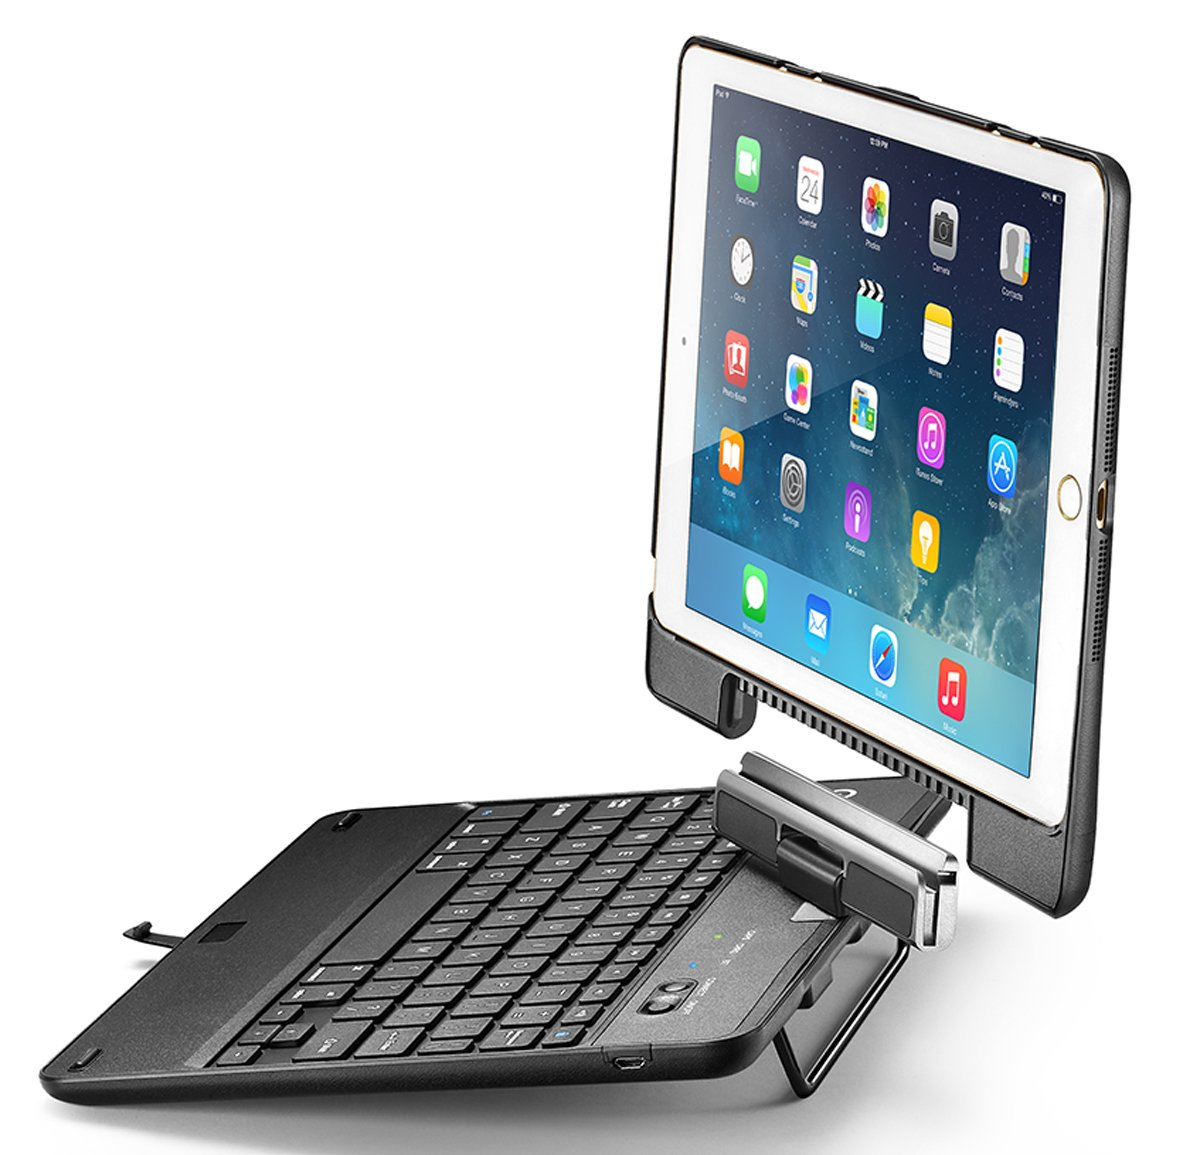 iPad Air 2 Keyboard Case, iPad Air Keyboard Case, New Trent Airbender Star with Detachable Wireless Bluetooth Smart Keyboard for the Apple iPad Air, iPad Air 2; Not for iPad Pro, iPad Mini